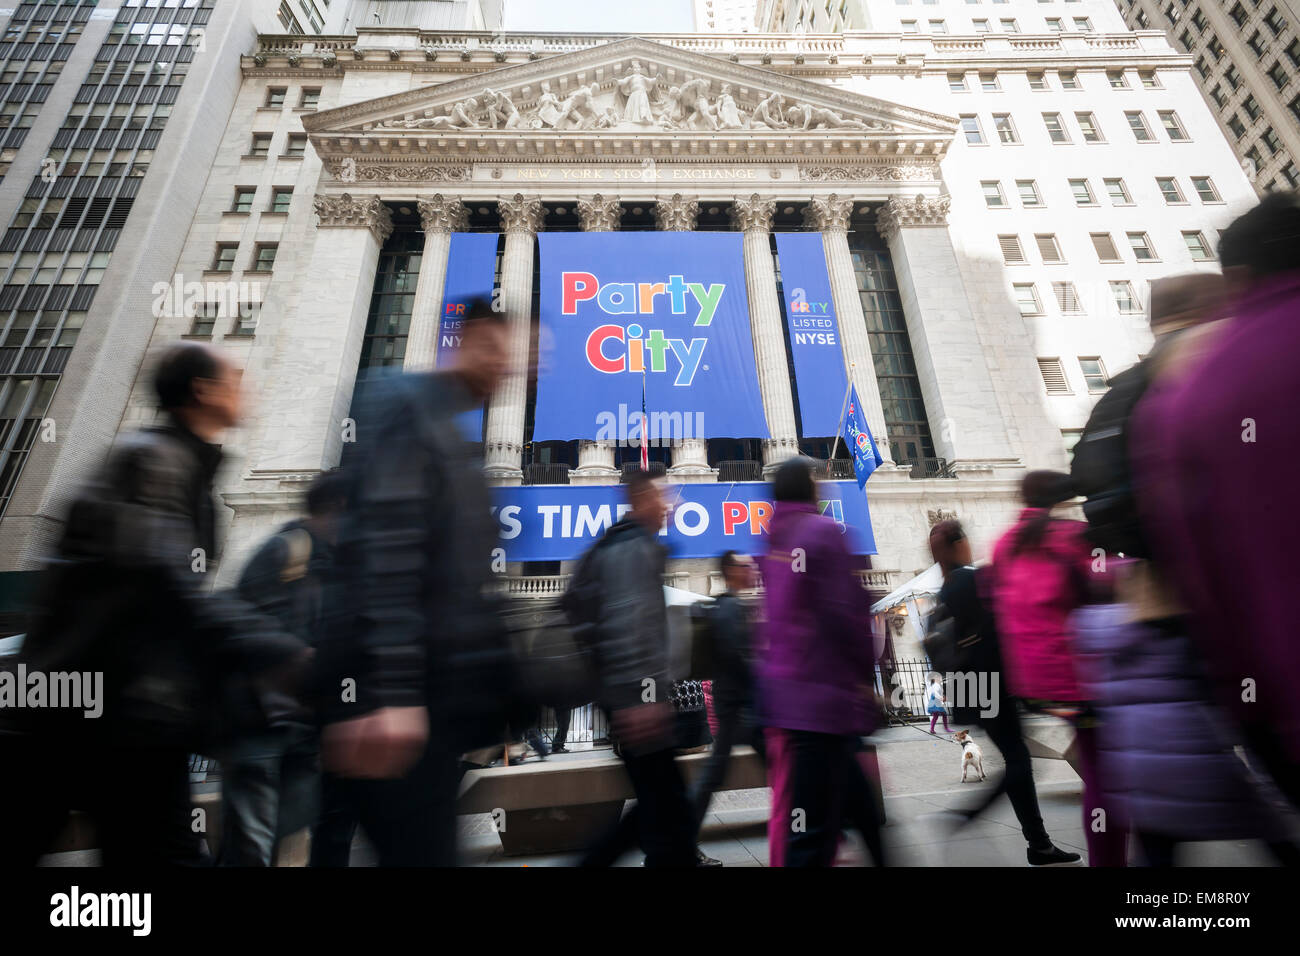 The New York Stock Exchange is decorated for the Party City initial public offering on Thursday, April 16, 2015. - Stock Image